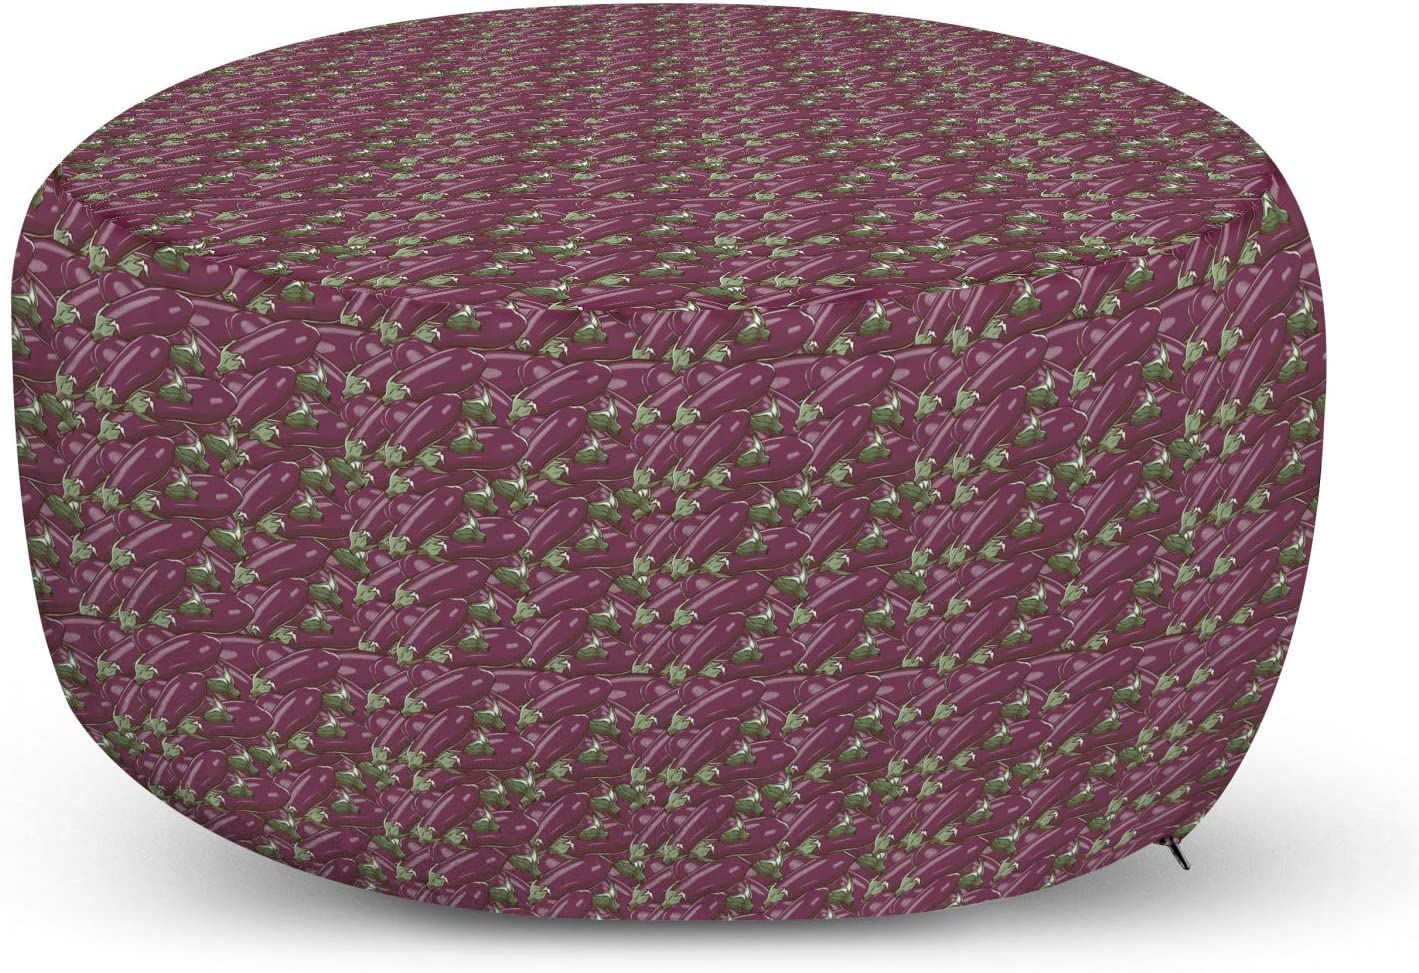 Don't miss the Superior campaign Ambesonne Eggplant Pouf Cover with Retro Zipper Inspired Stacks